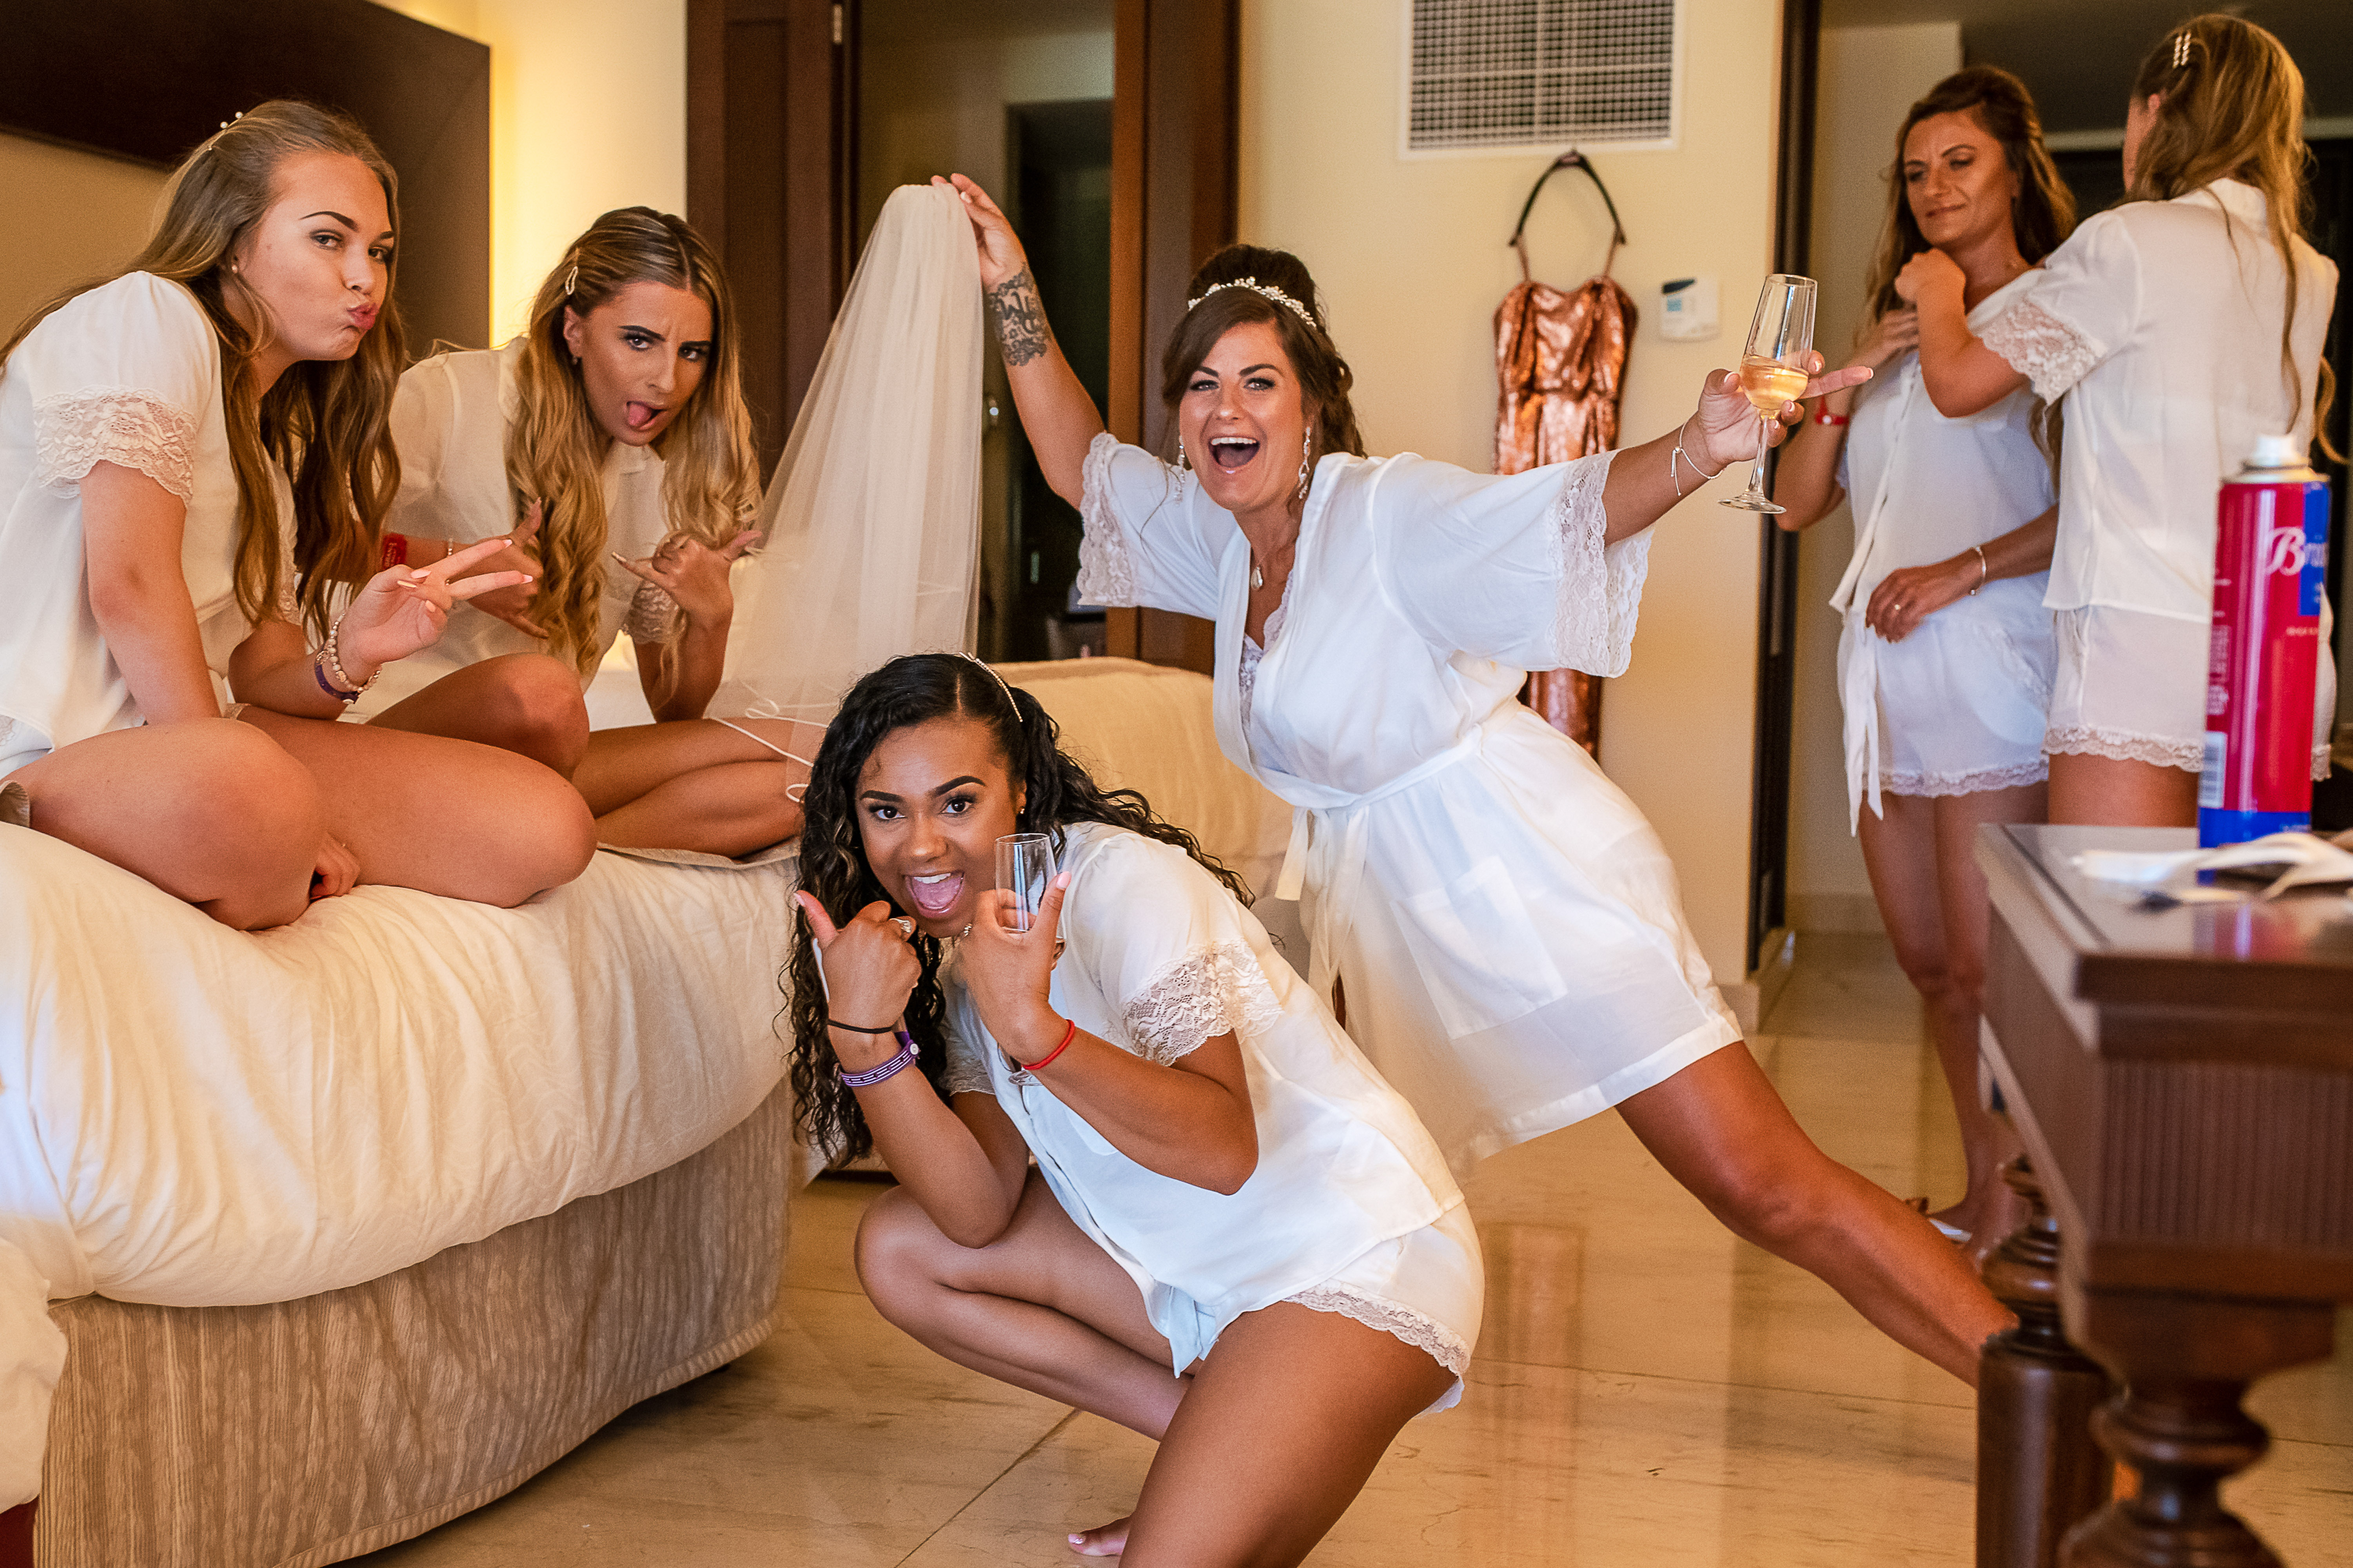 the bride and her bridesmaids having fun time before the ceremony with her underwear